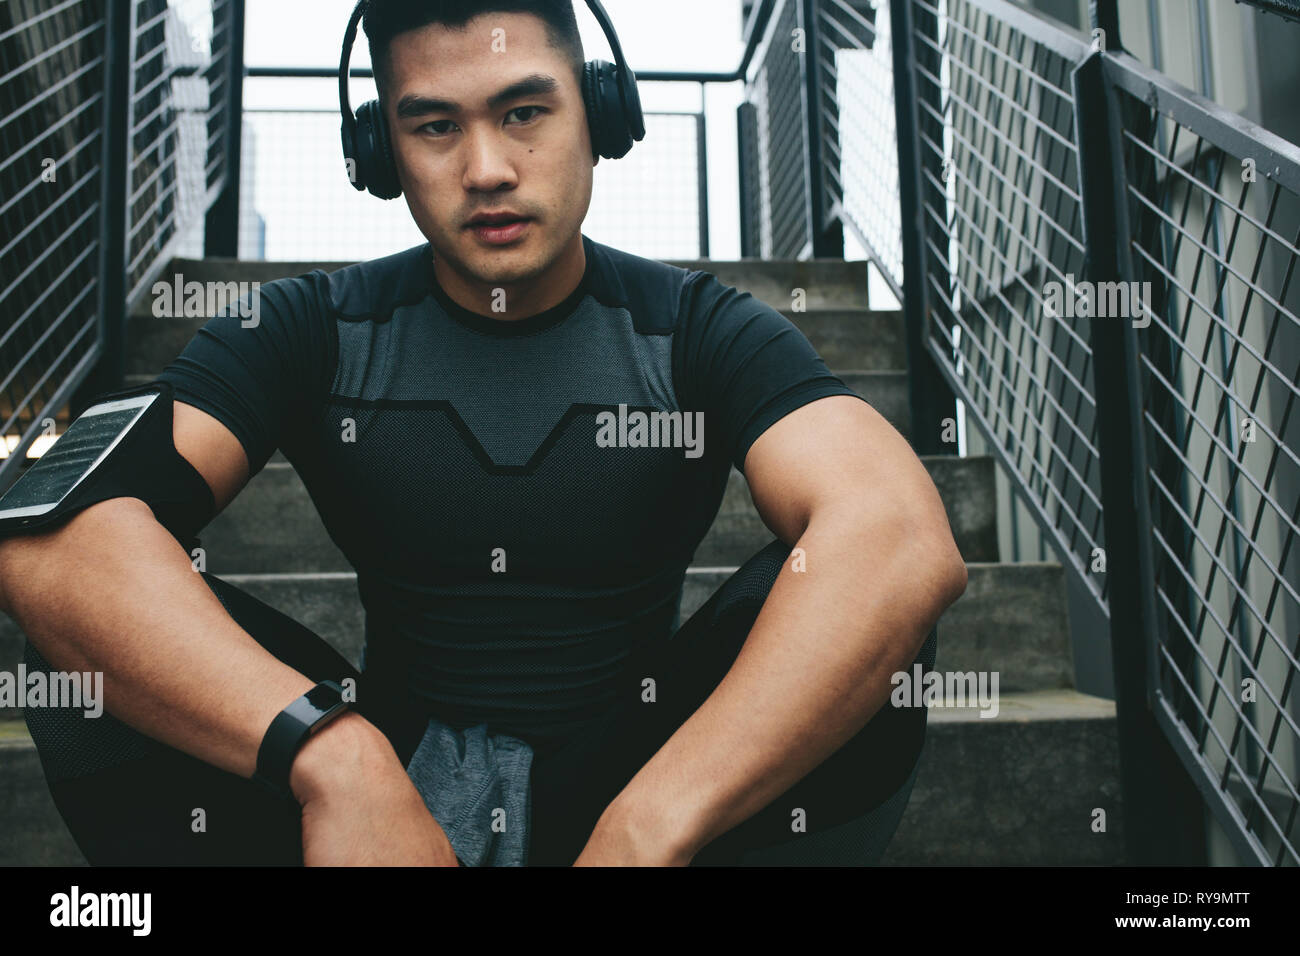 Portrait of asian man relaxing after workout sitting outdoors on stairs. Male athlete listening to music using wireless headphones while relaxing afte - Stock Image